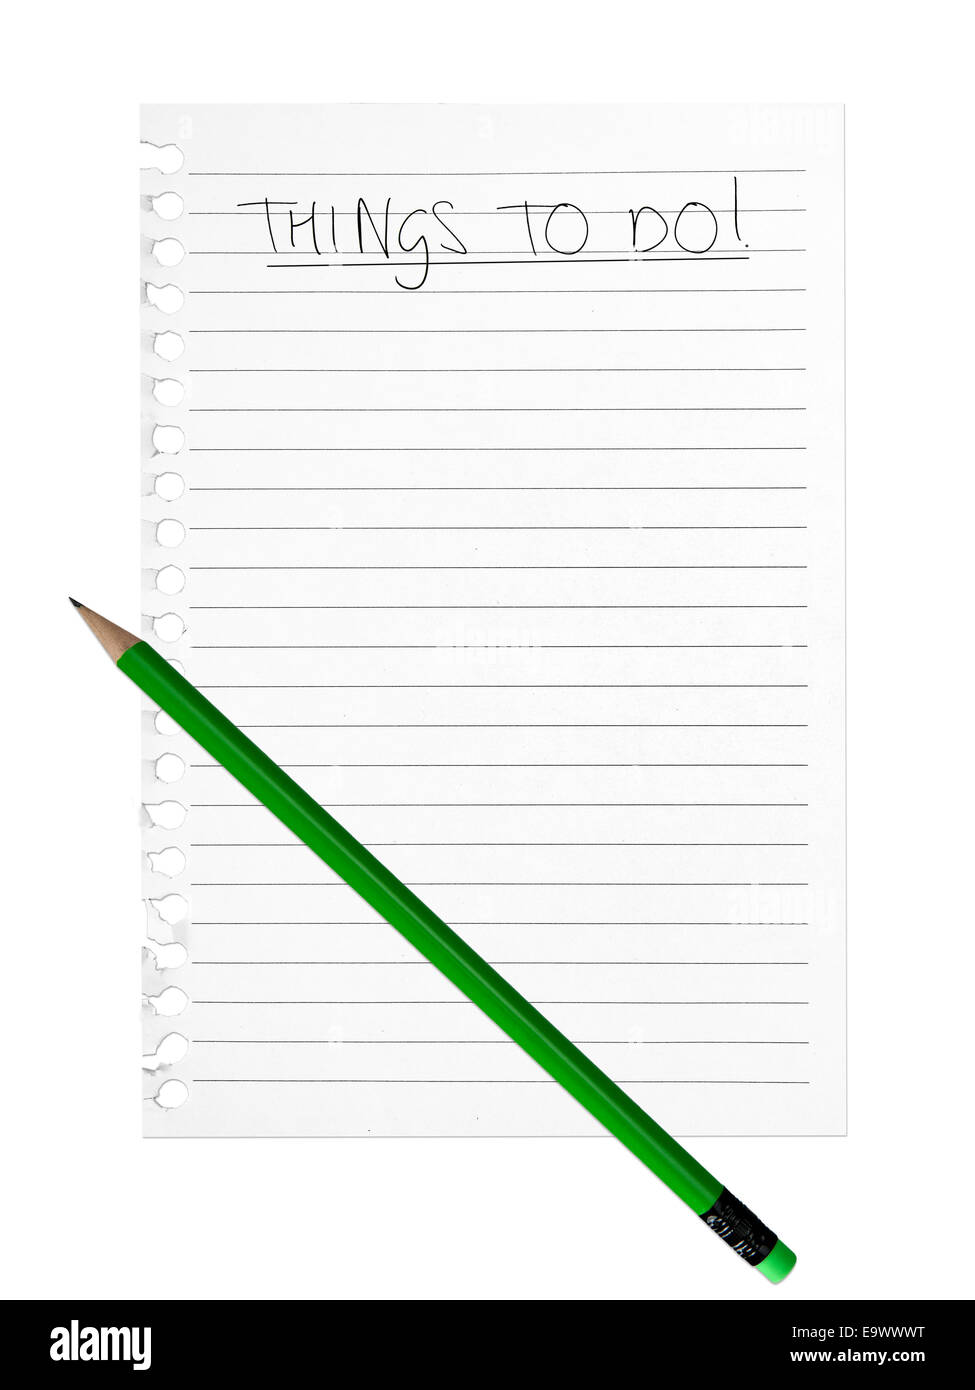 Blank sheet of lined paper, to do list. - Stock Image